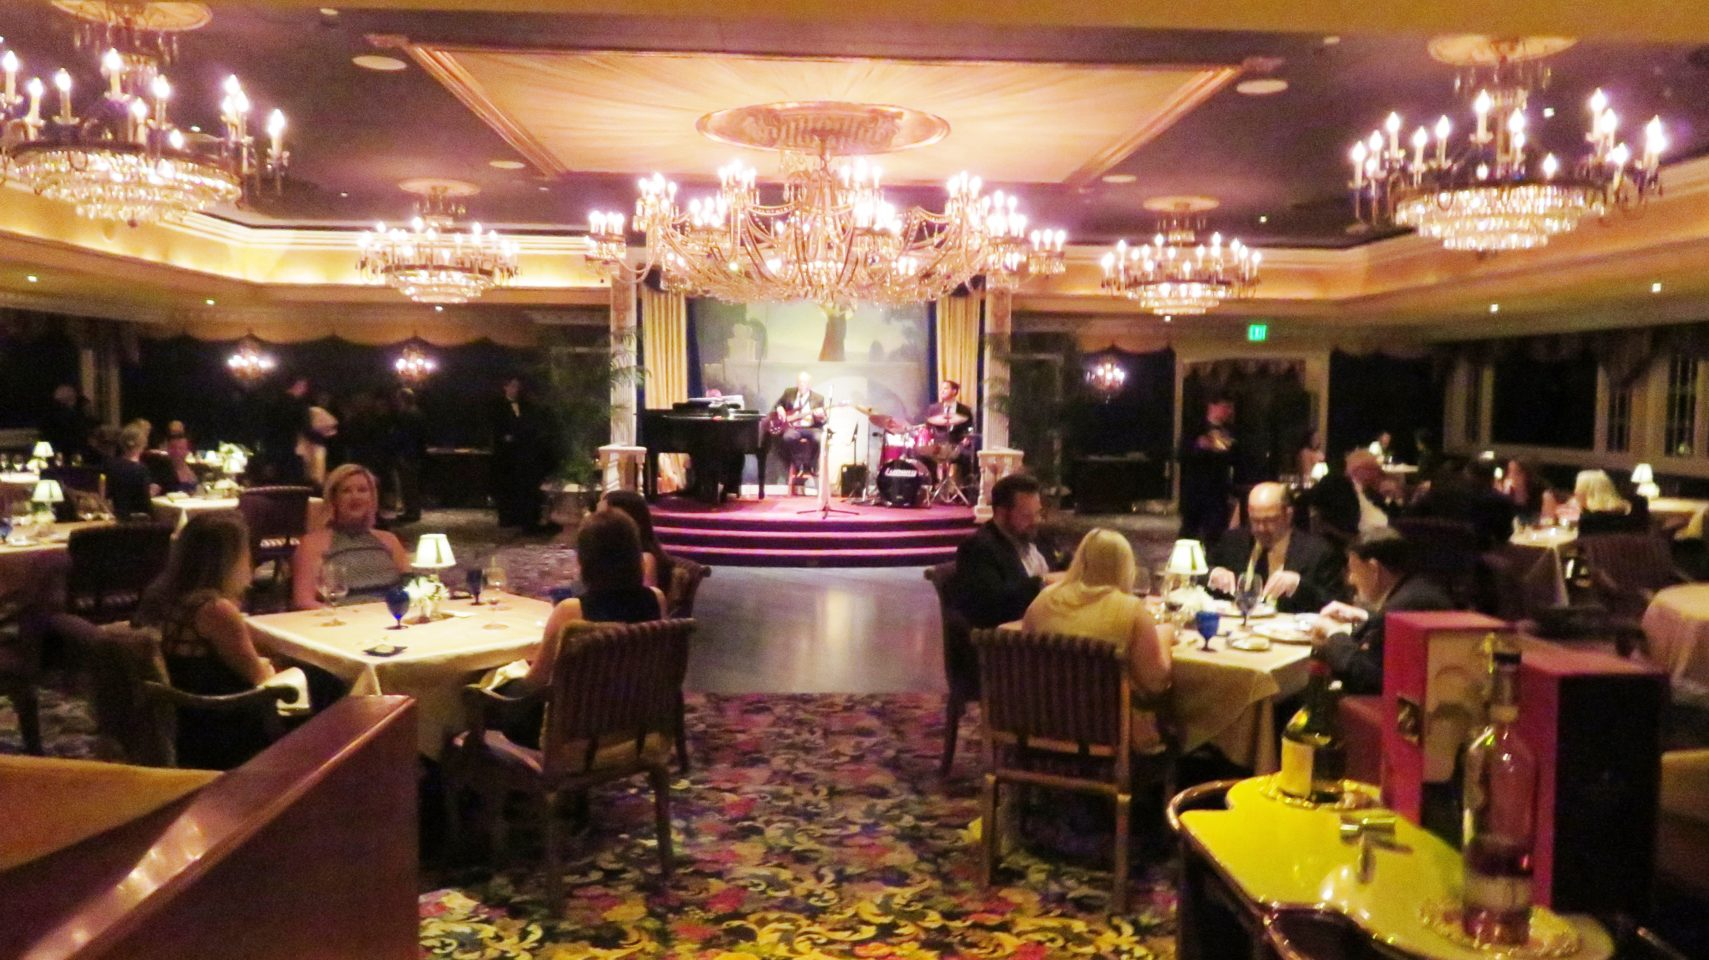 The Penrose Room restaurant at The Broadmoor Resort